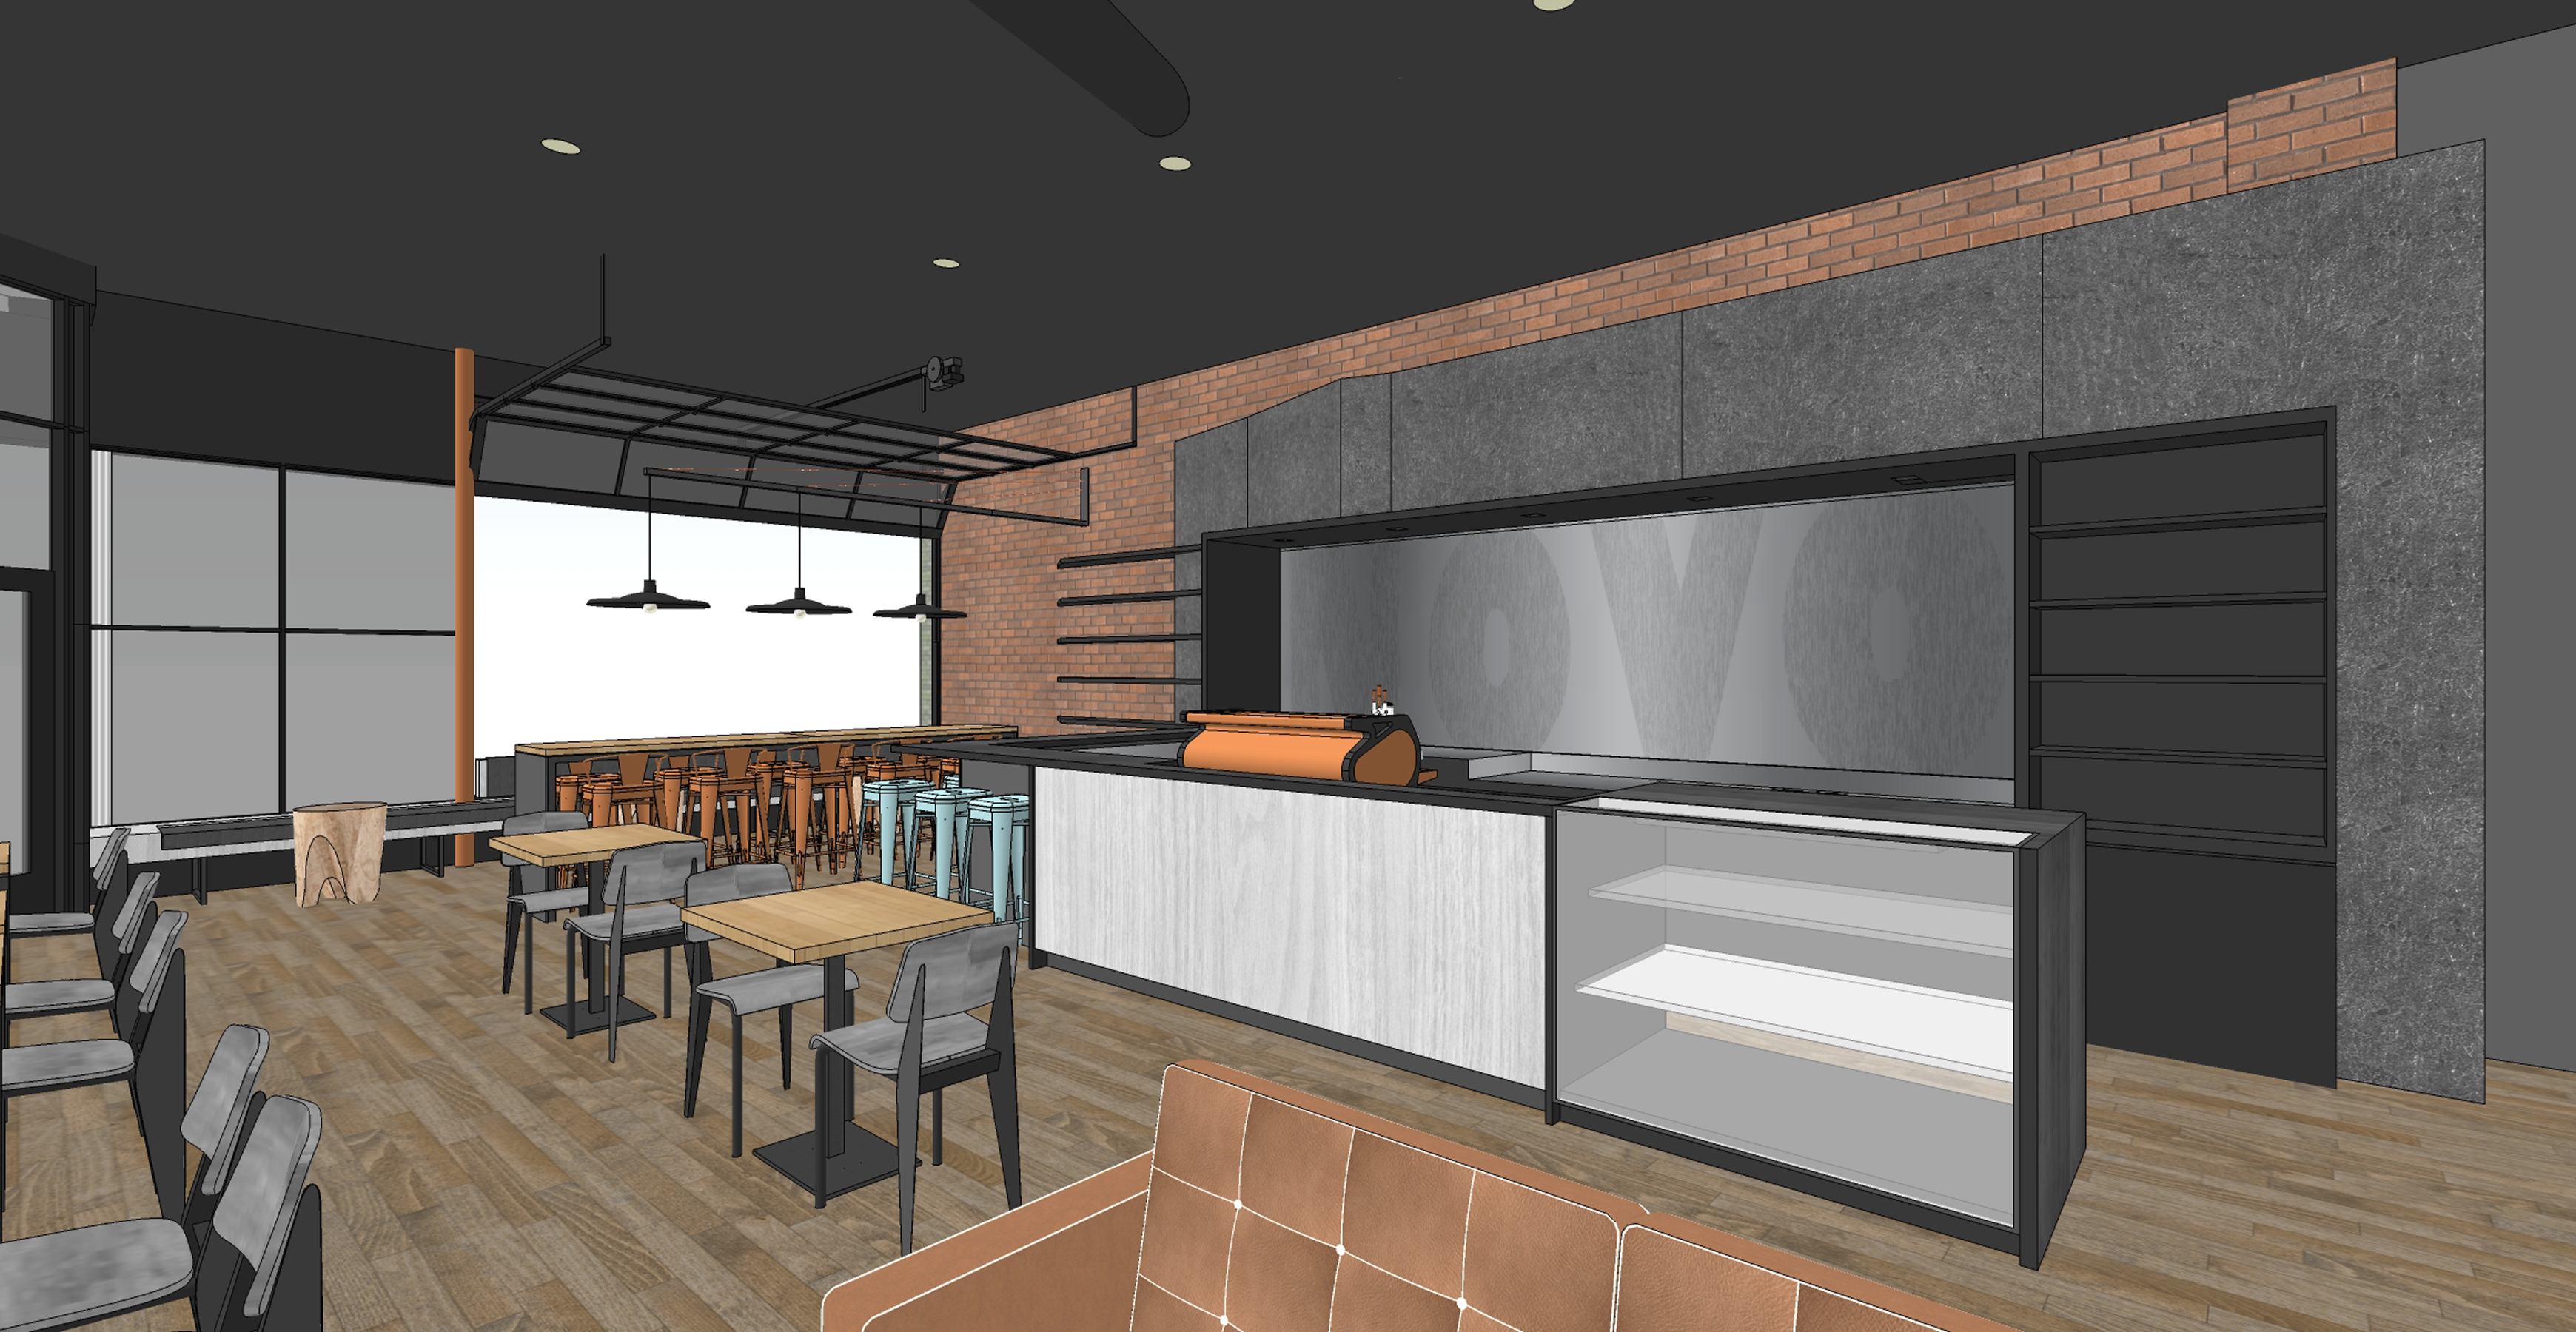 Novo Coffee Shop 6th & Gilpin Concept View from back open studio architecture OSA